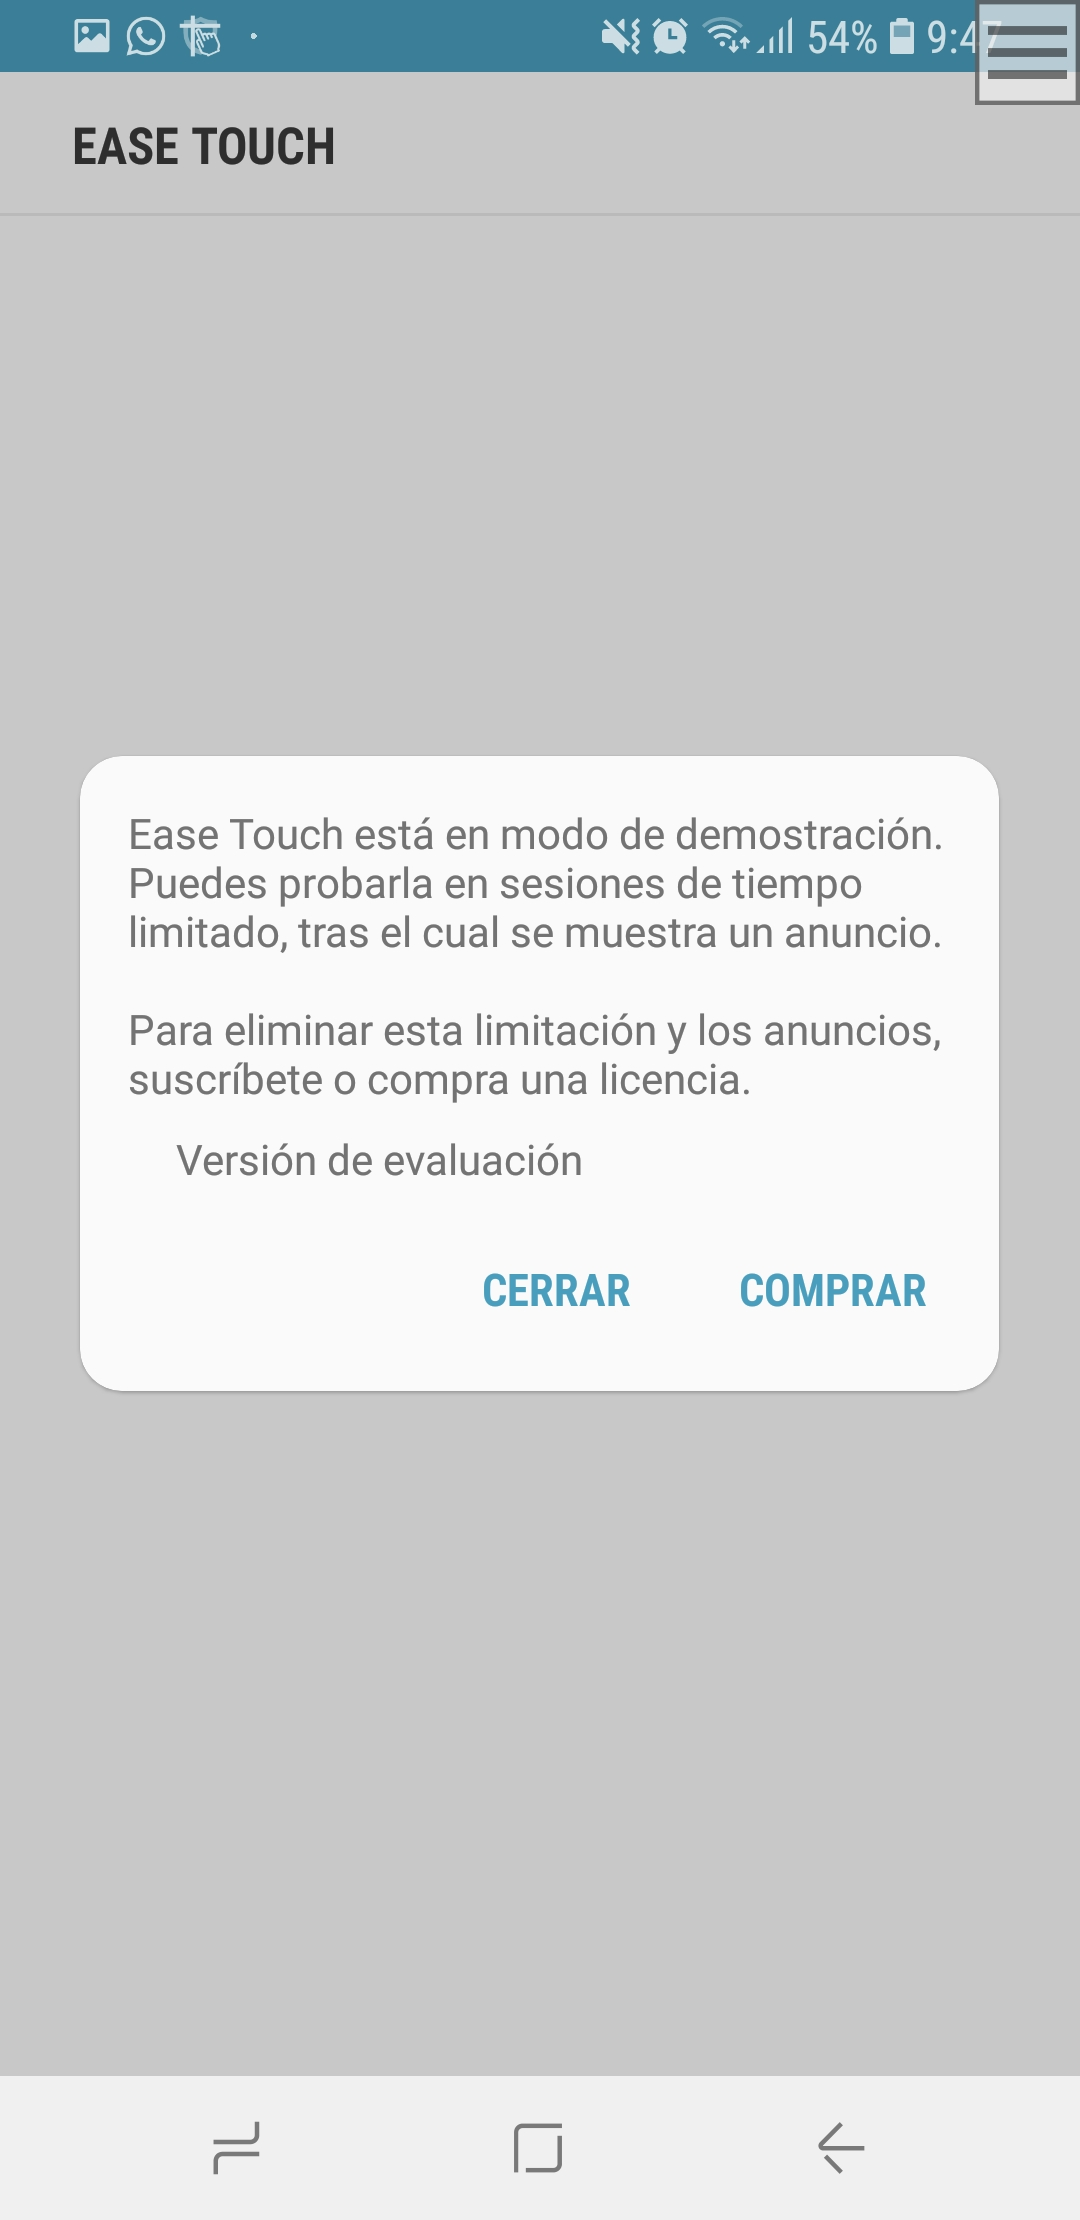 Compra ease touch